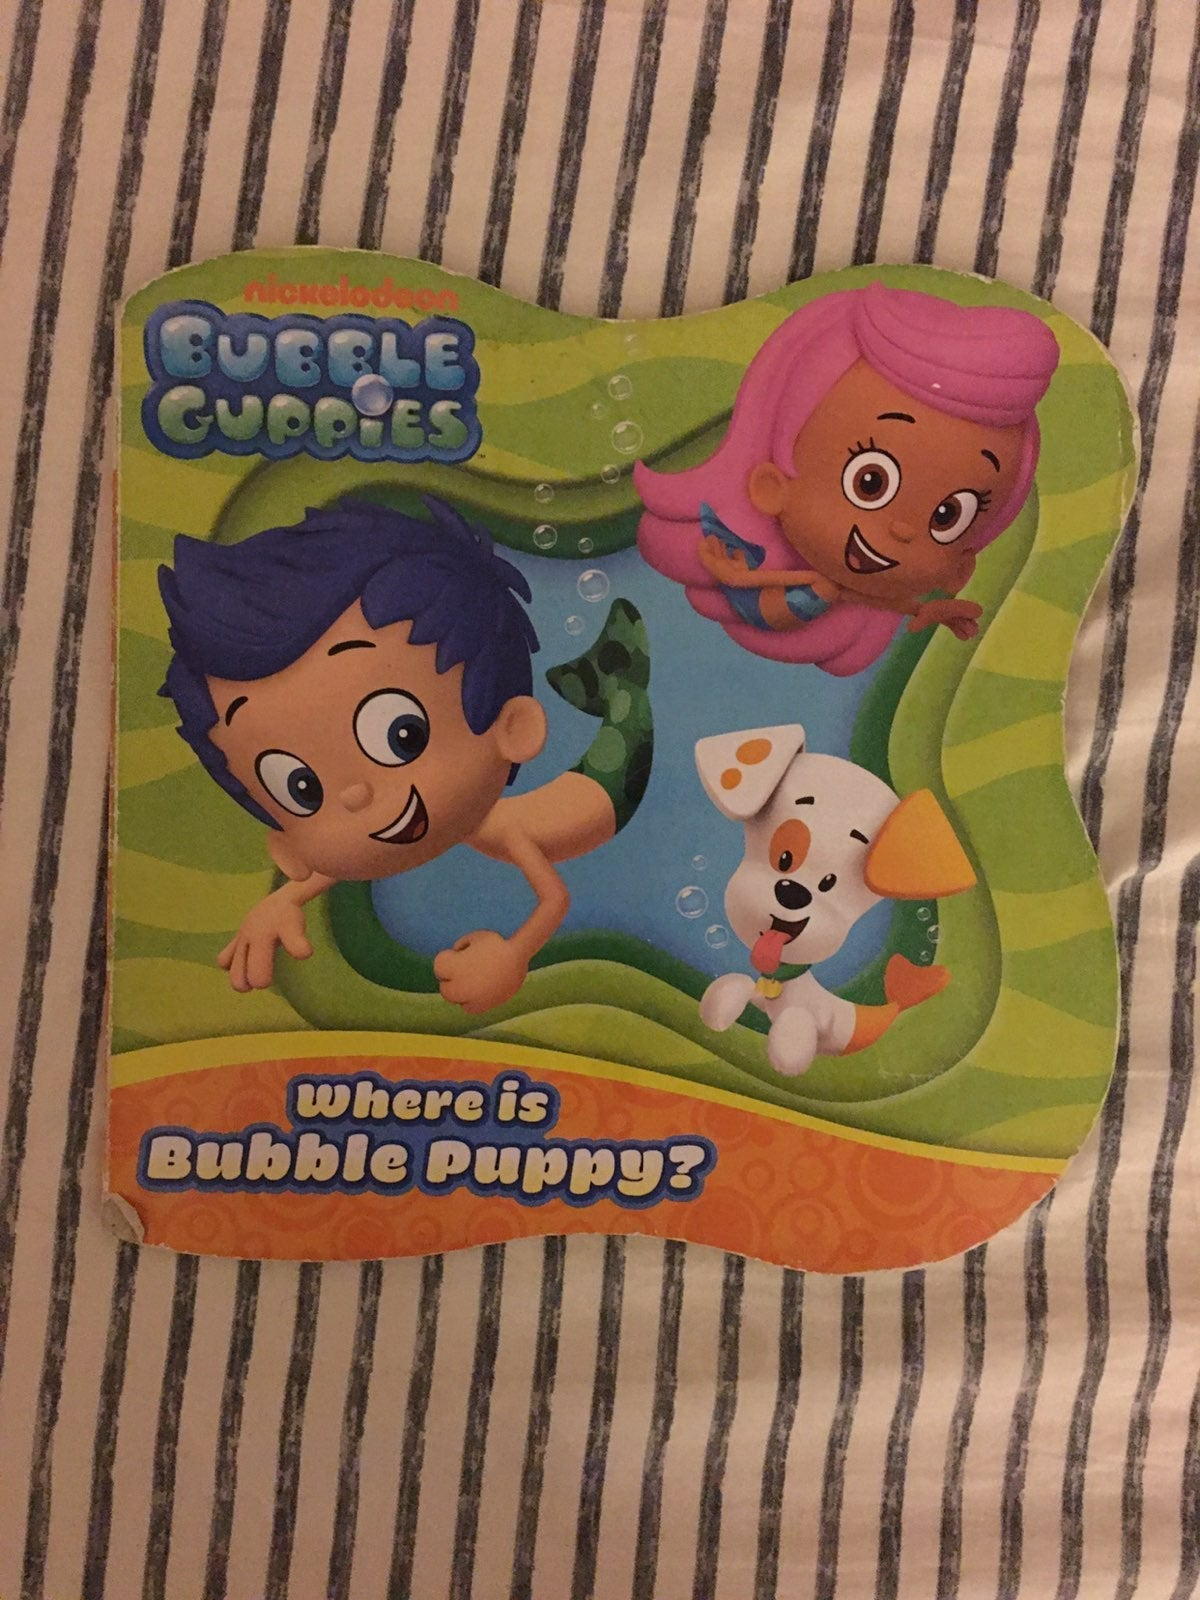 Bubble Guppies Where is Bubble Puppy